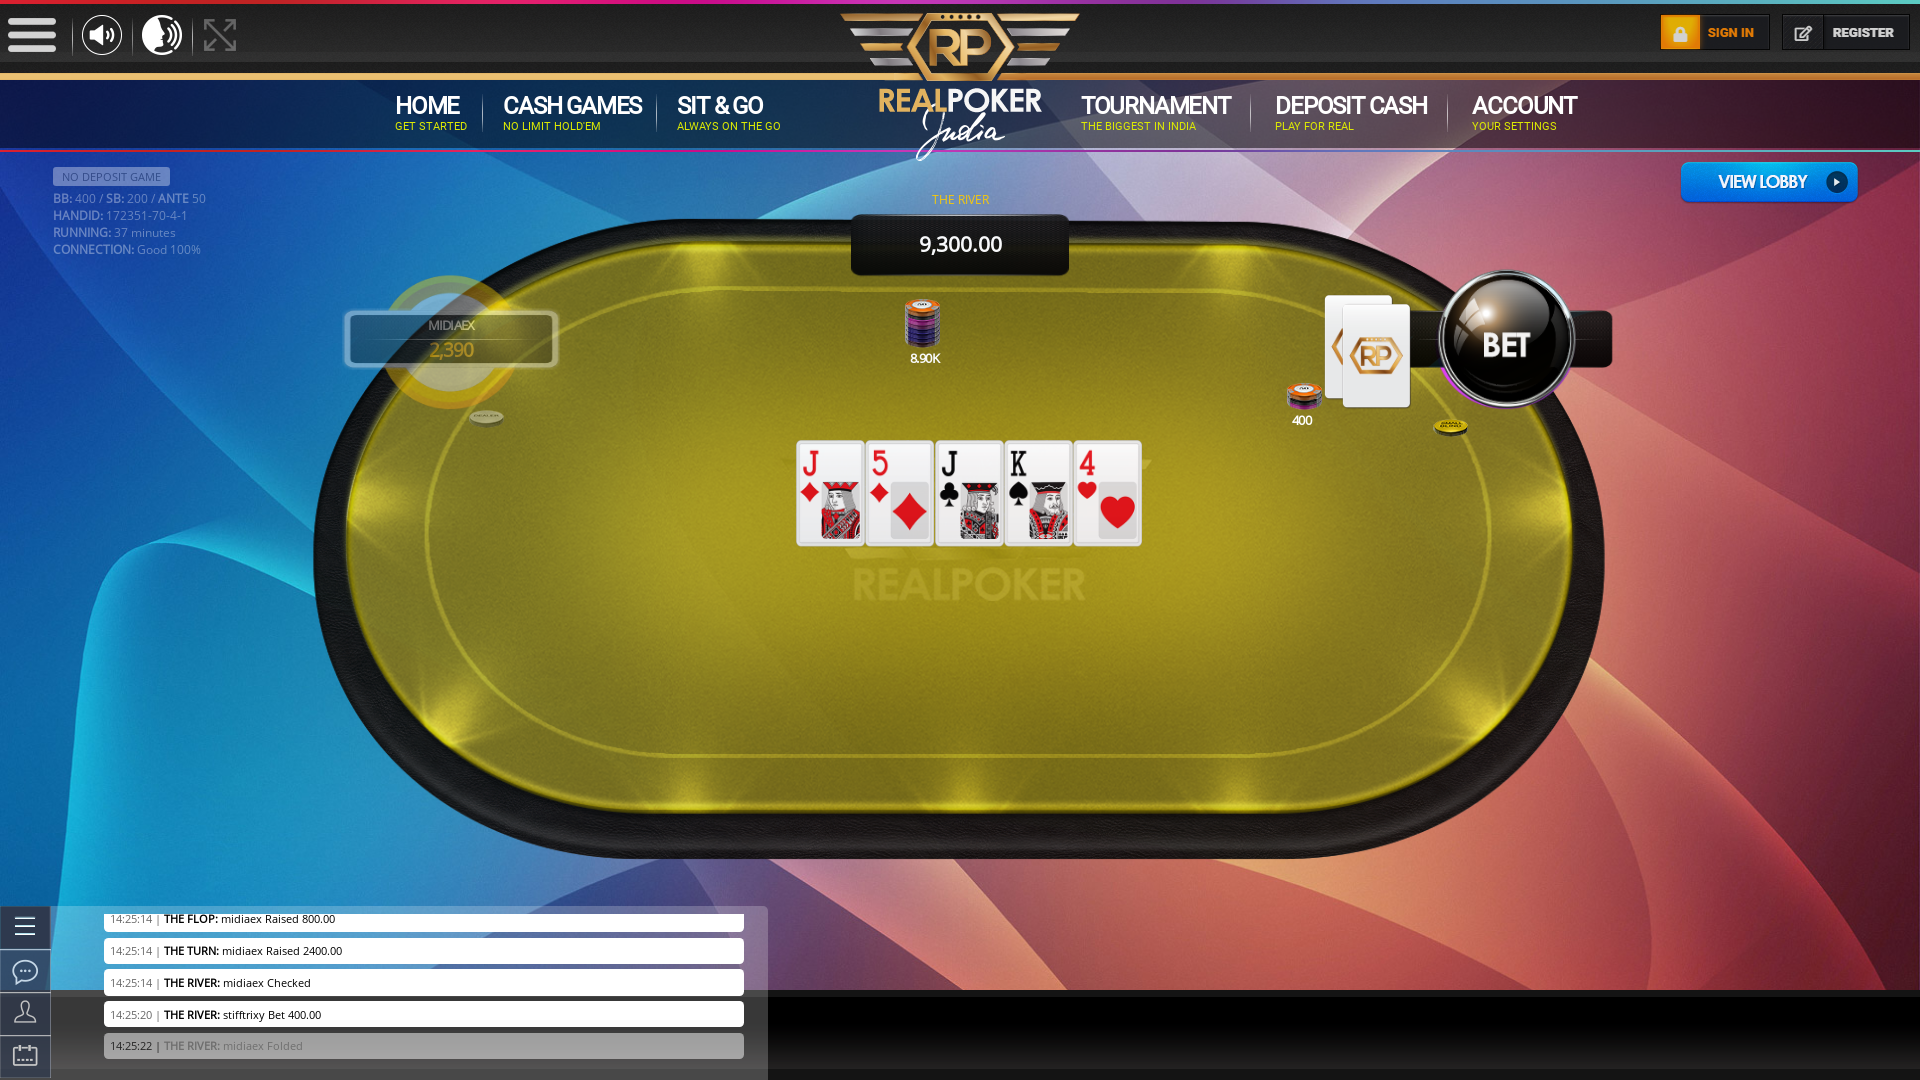 Real poker 10 player table in the 37th minute of the match